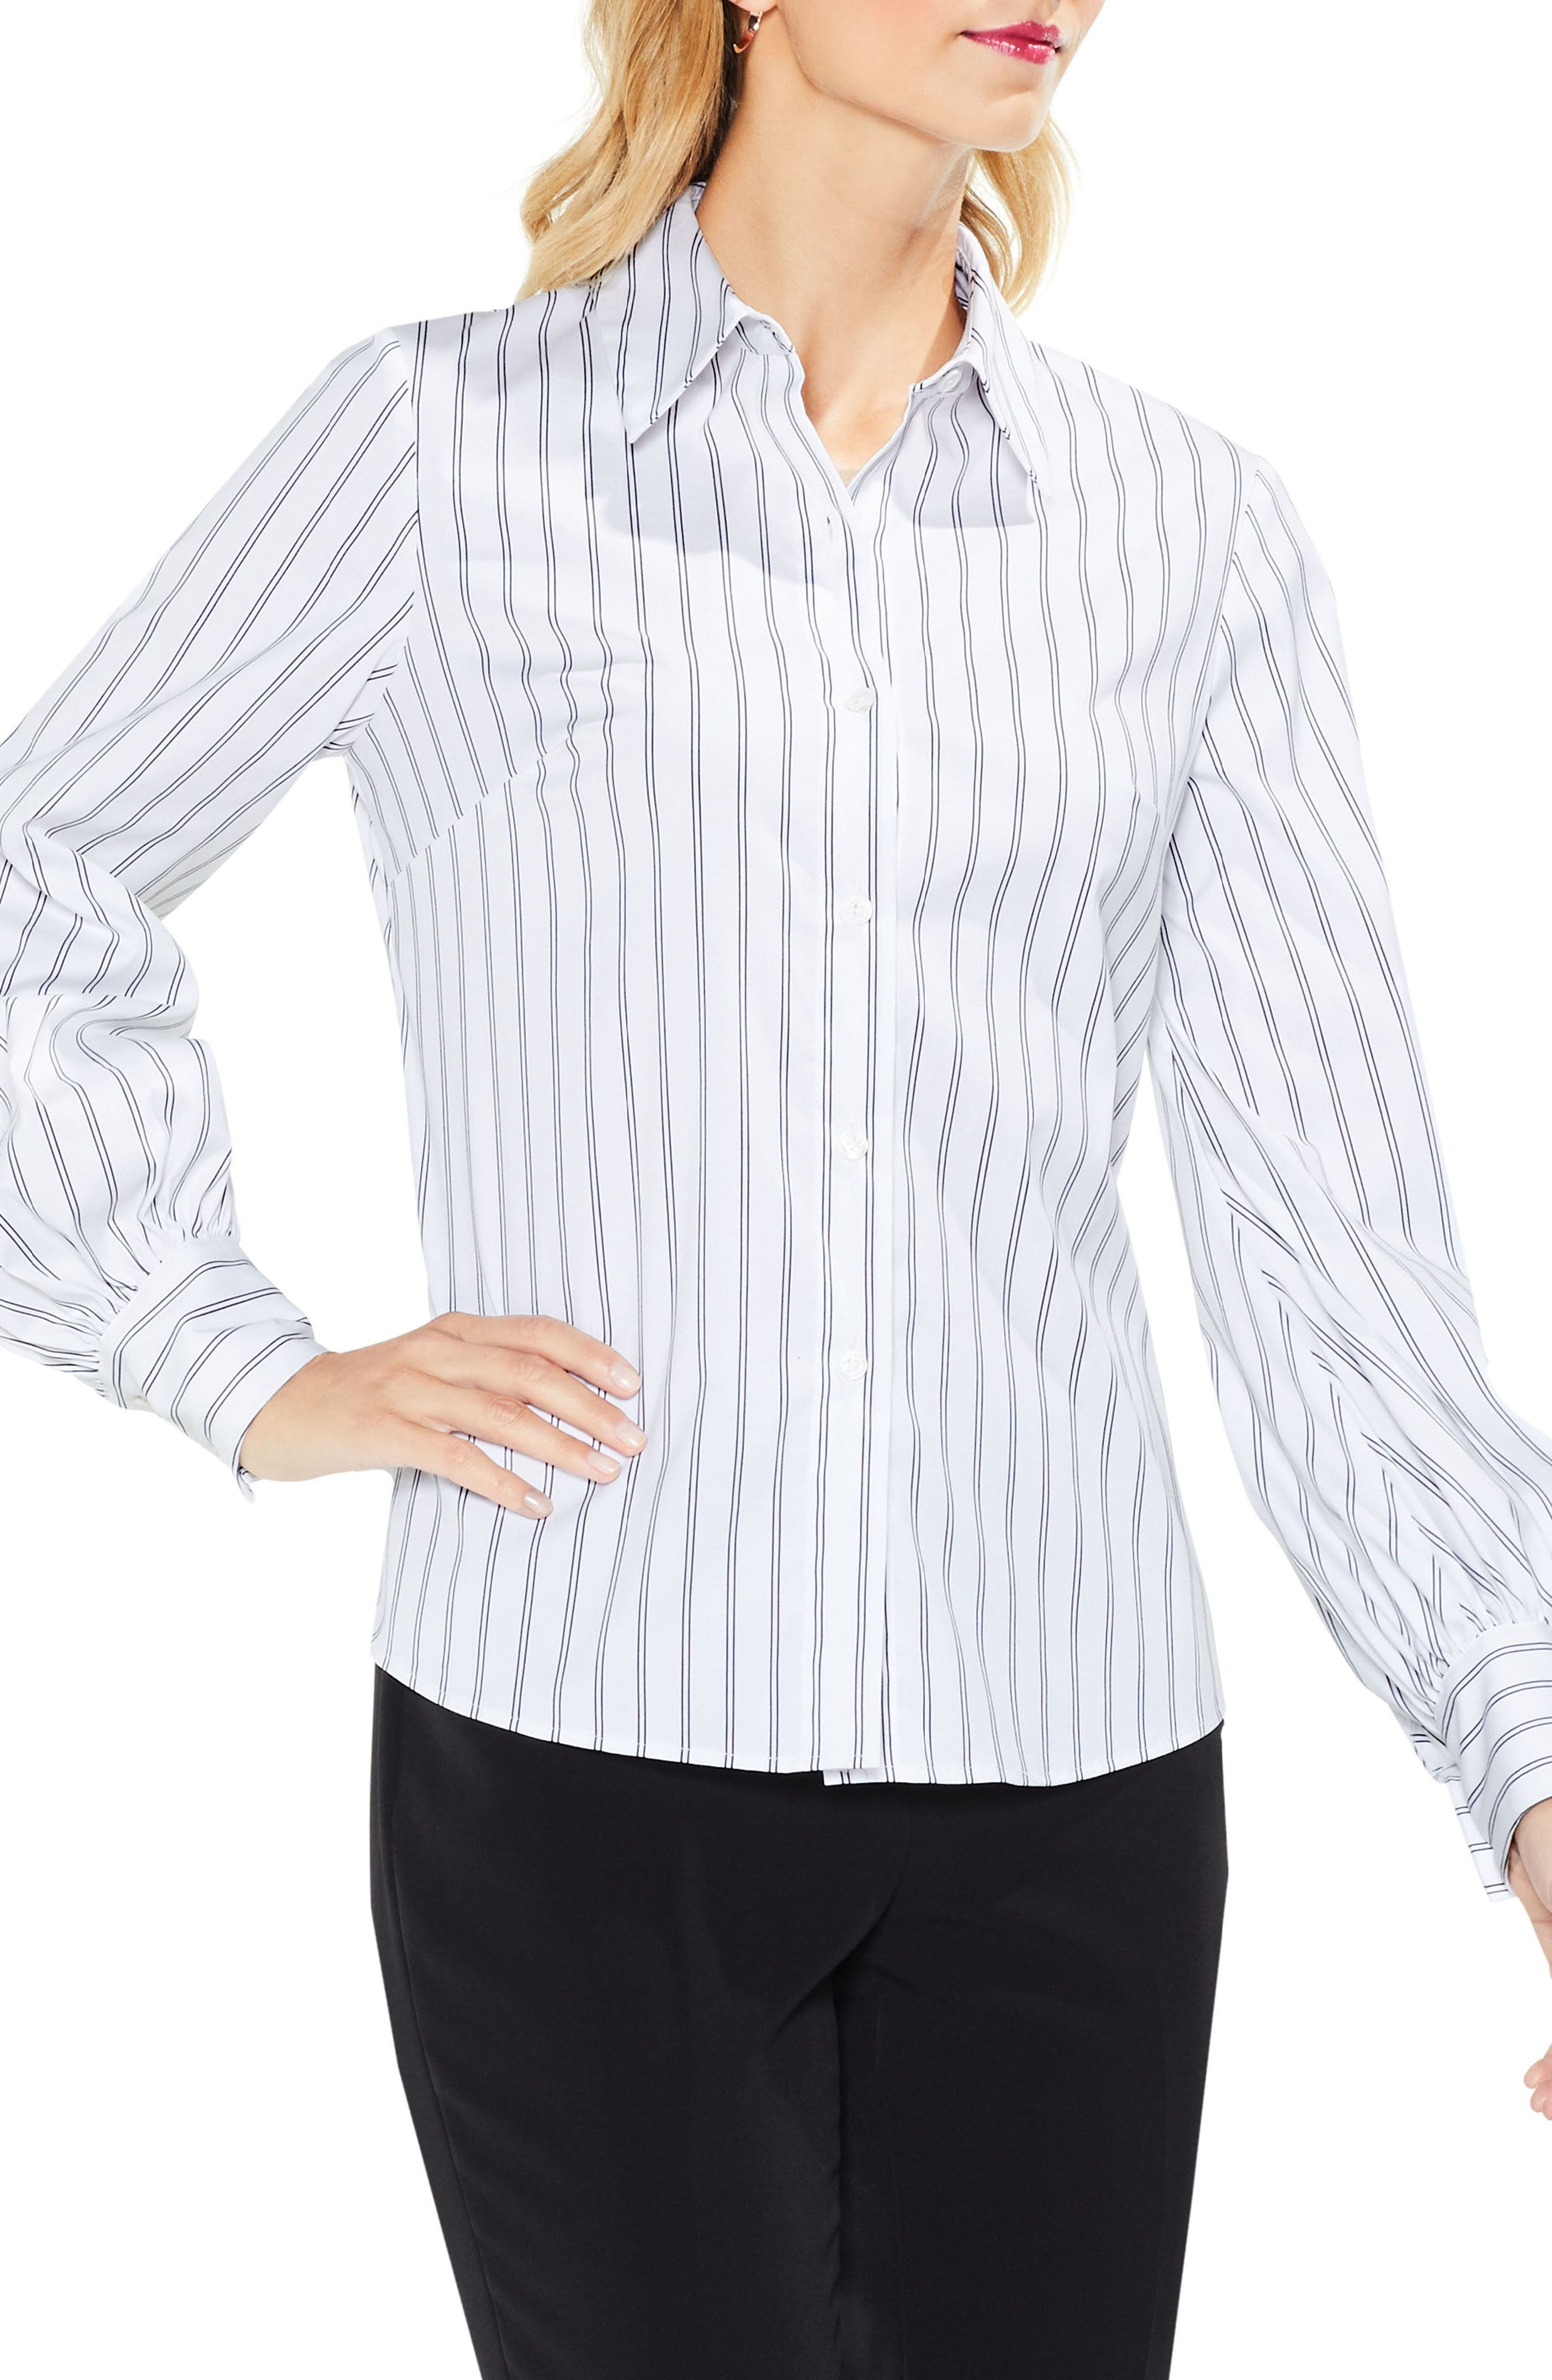 Alternate Image 1 Selected - Vince Camuto Stripe Lace-Up Shirt